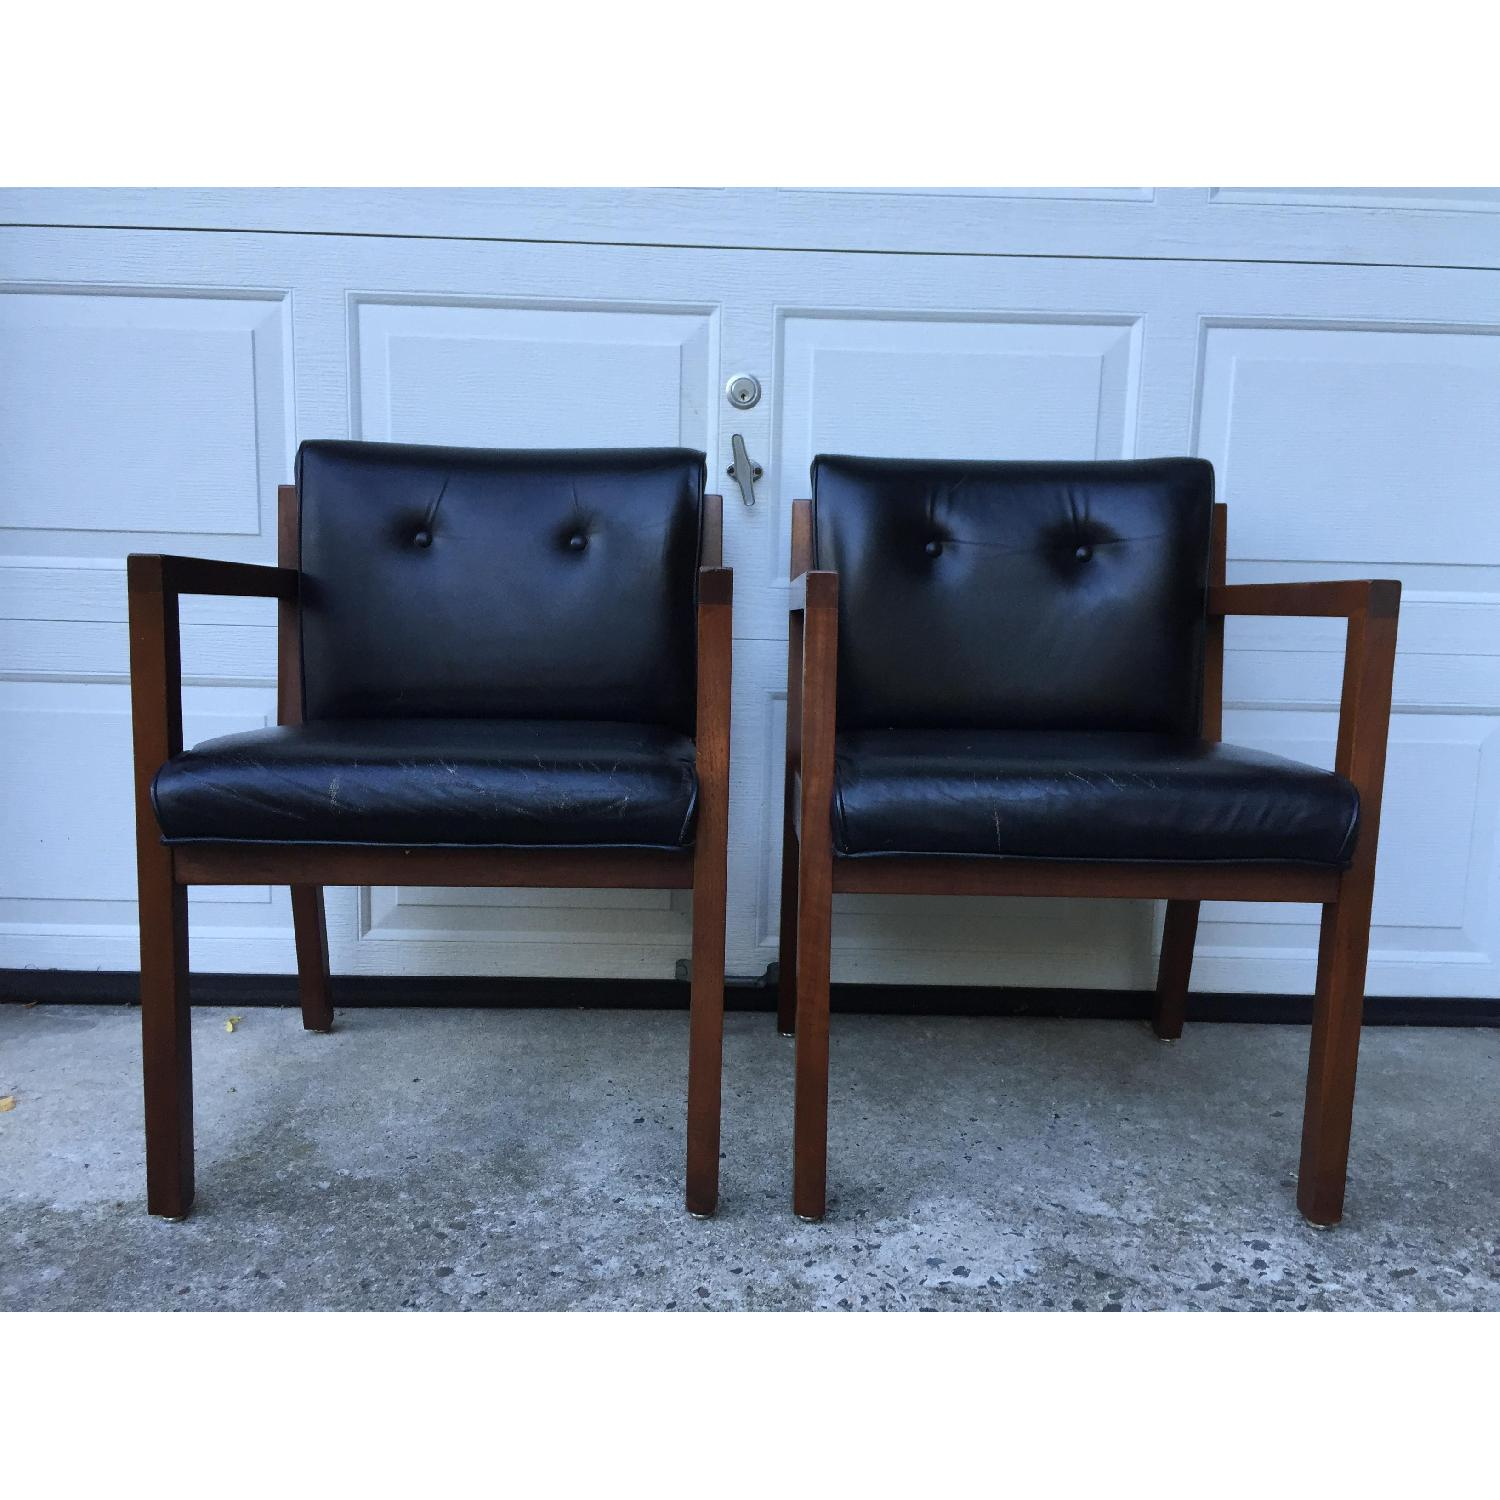 Jasper Chair Company Mid Century Modern Walnut Frame Chairs - Pair - image-8